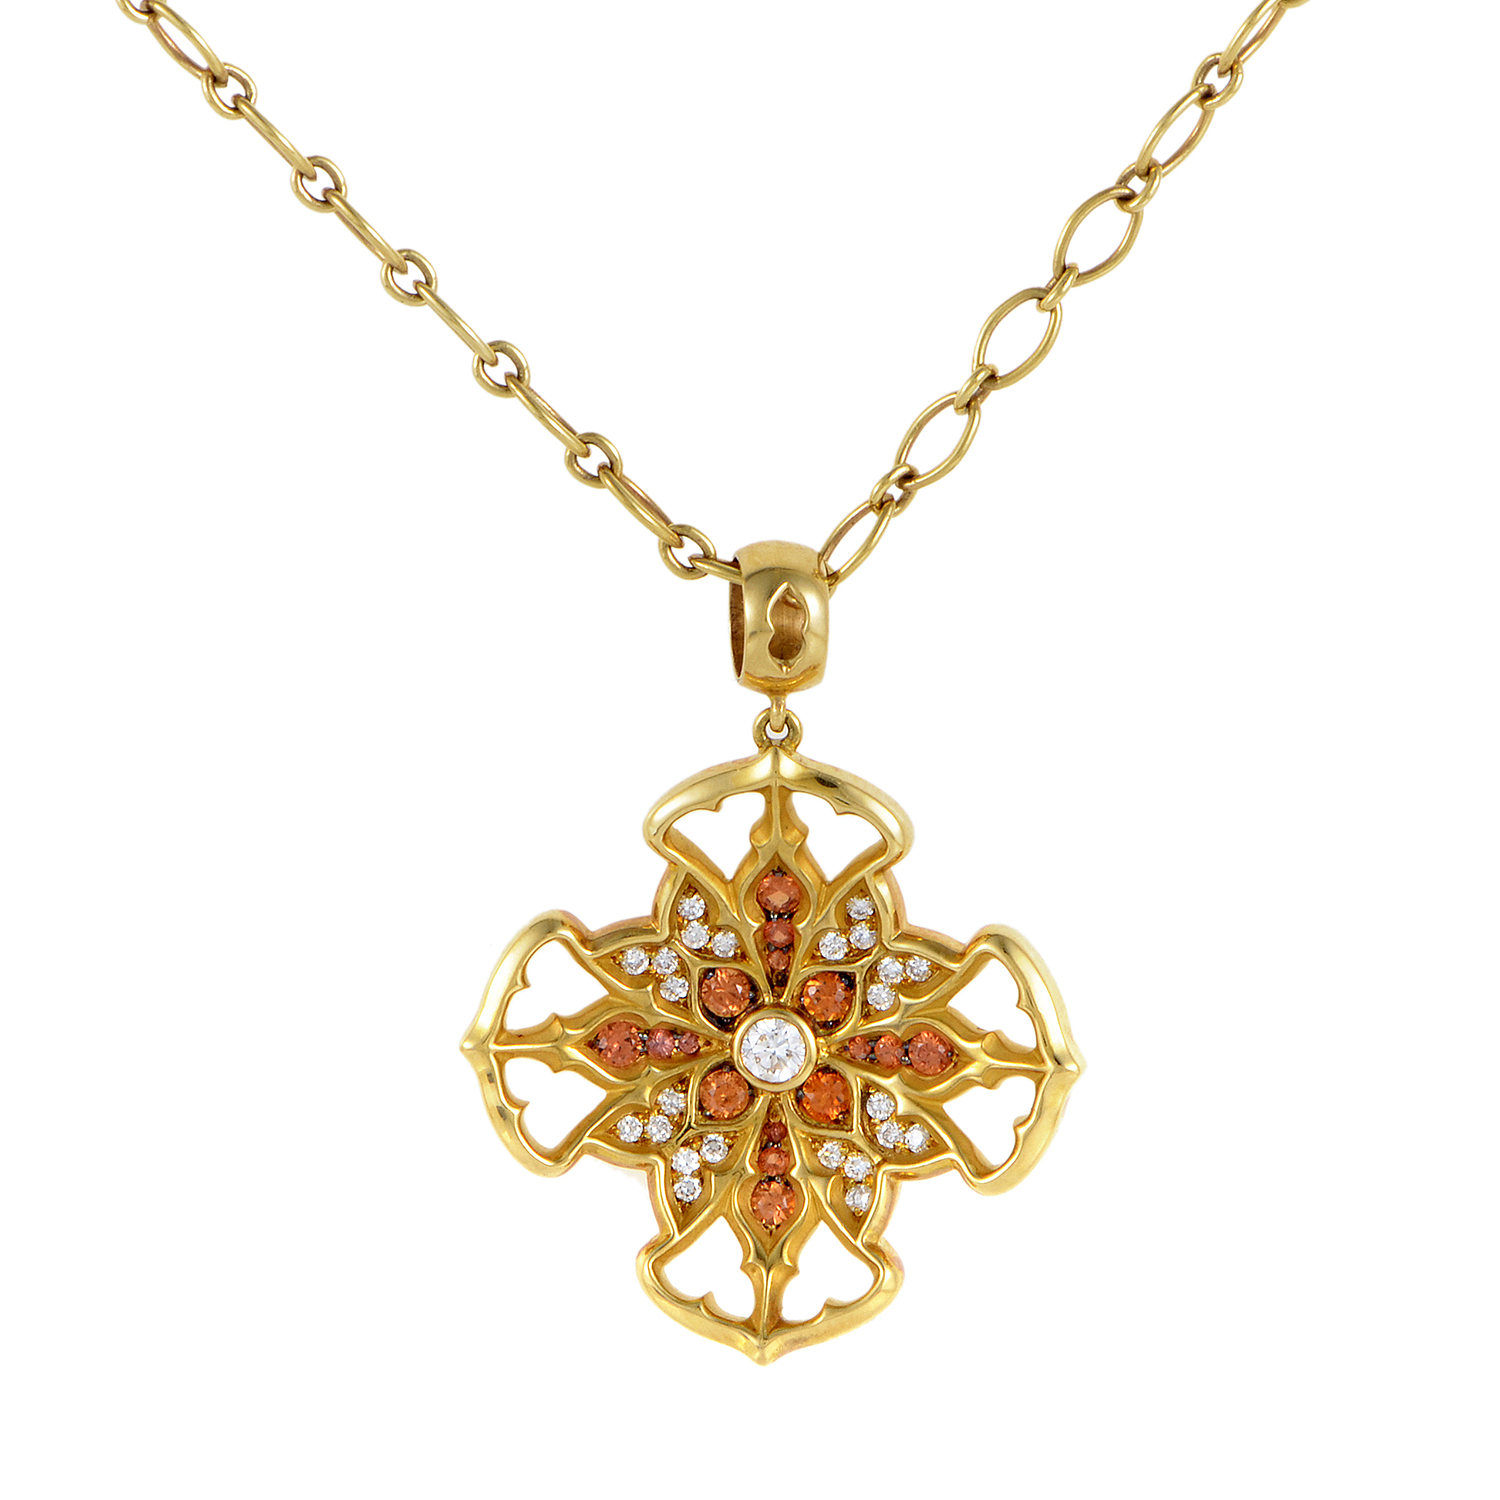 Vitral Vidriera Gold Diamond & Orange Sapphire Cross Pendant Necklace